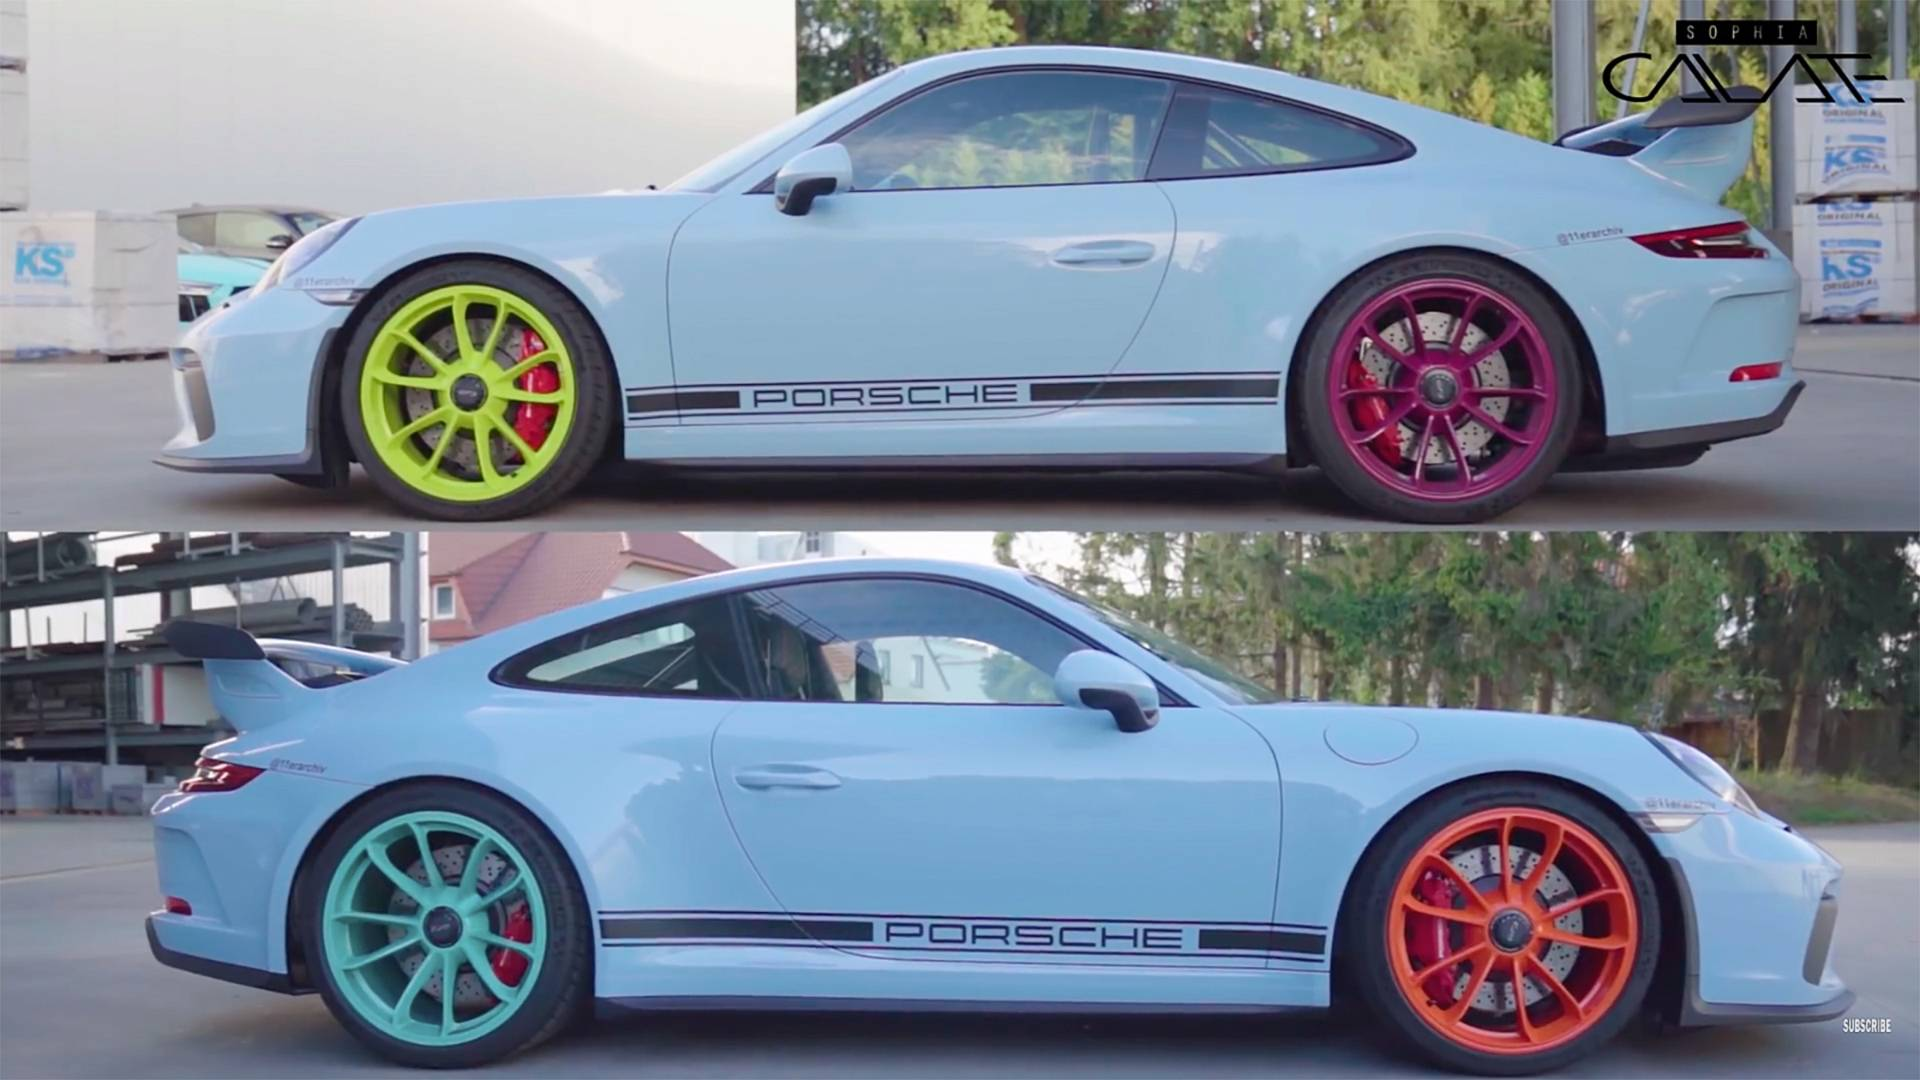 You'd think the color choice was random, but it really wasn't. He consulted Porsche for 7 months while searching for the perfect palette to apply